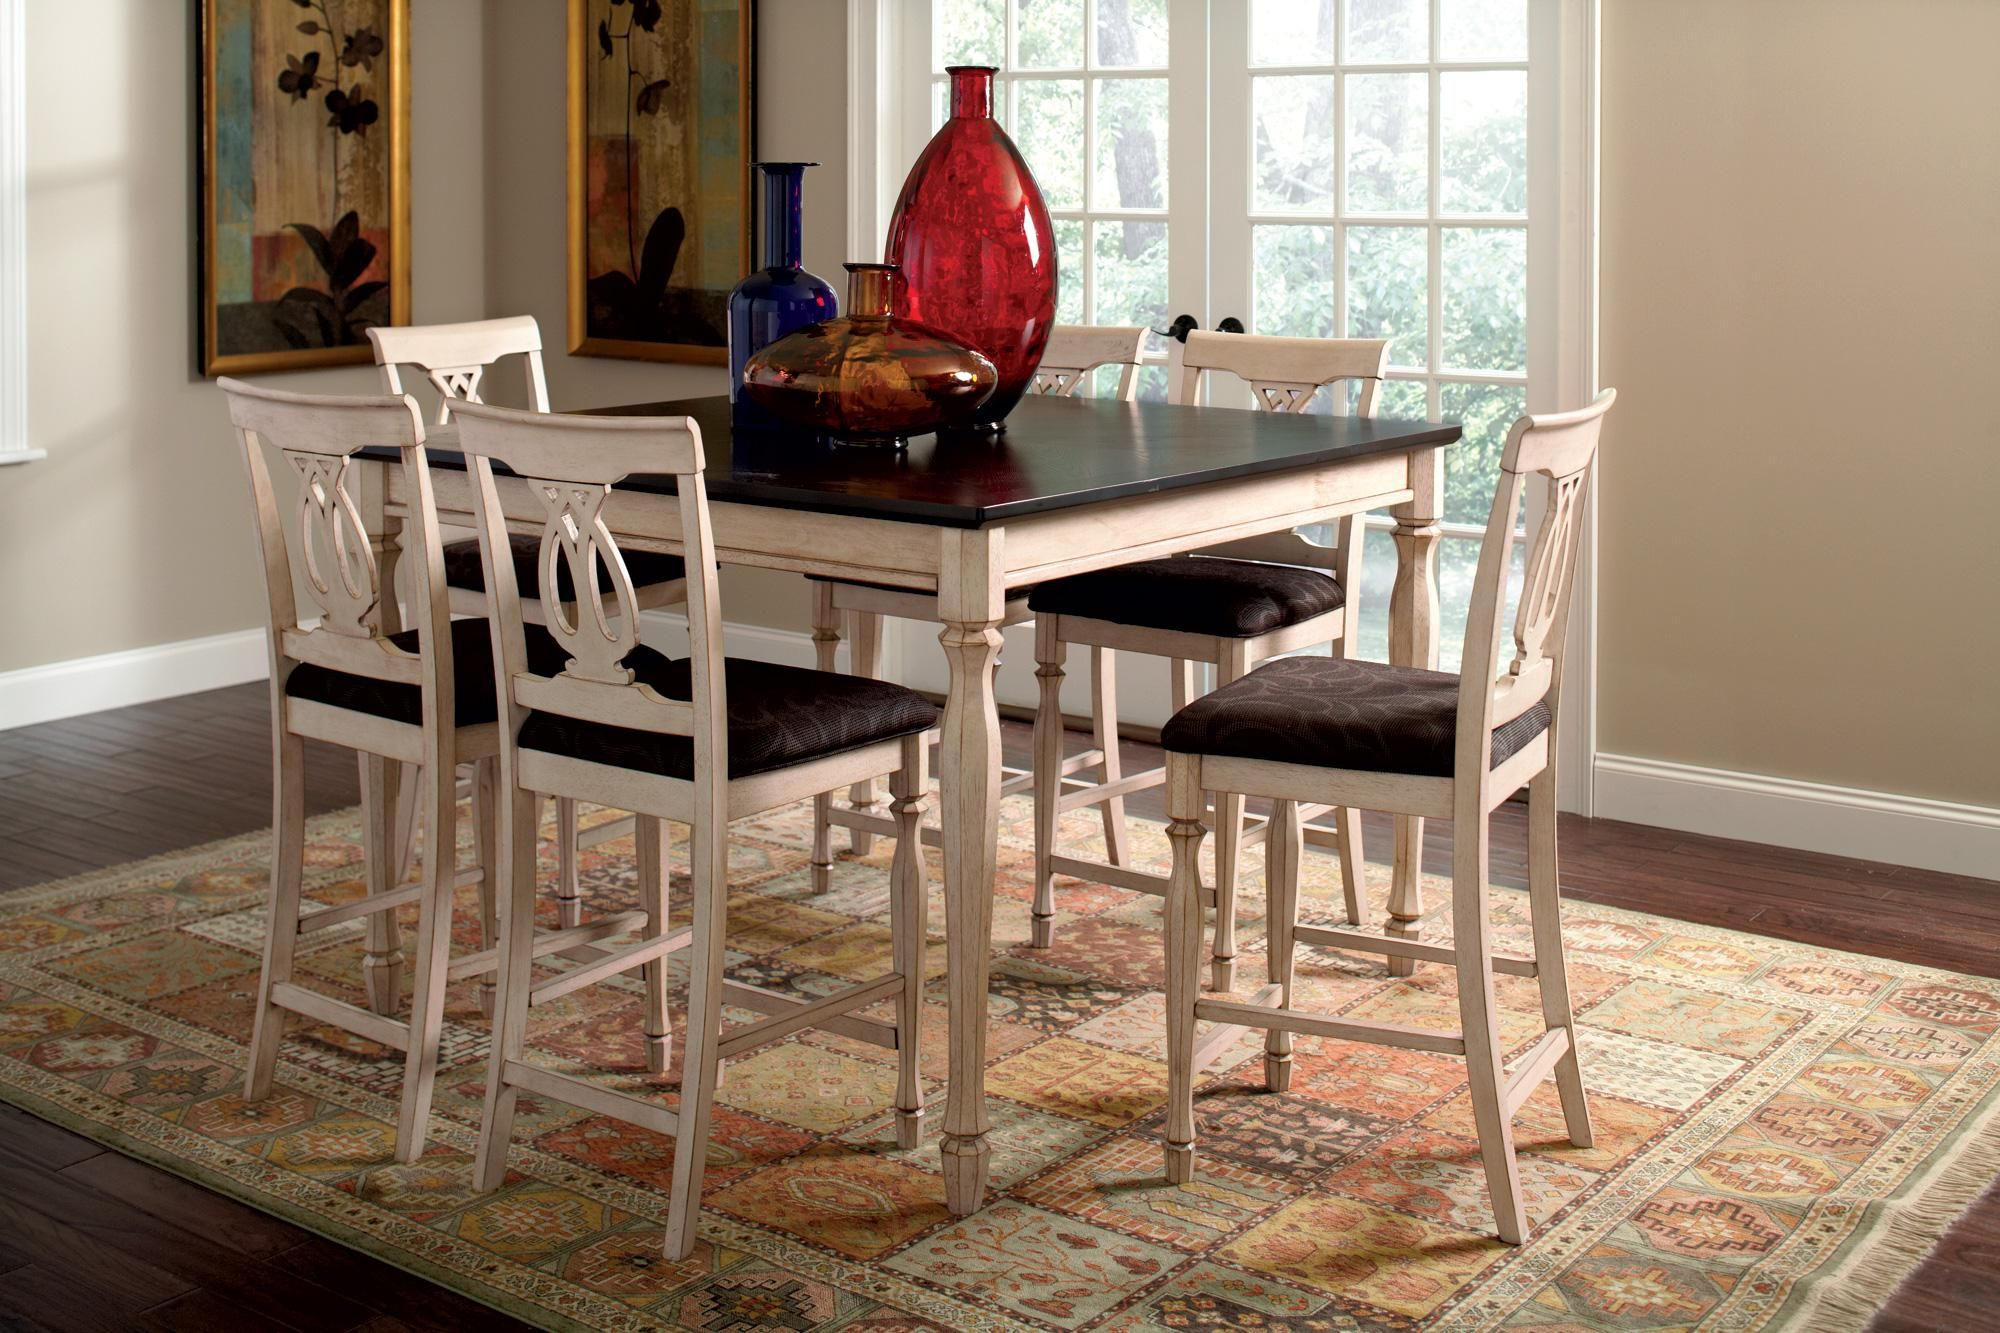 Antique White Merlot Finish Counter Height Dining Table 6 Chairs Furniture 2 Go Kitchen Table Settings Bar Height Kitchen Table Counter Height Dining Table